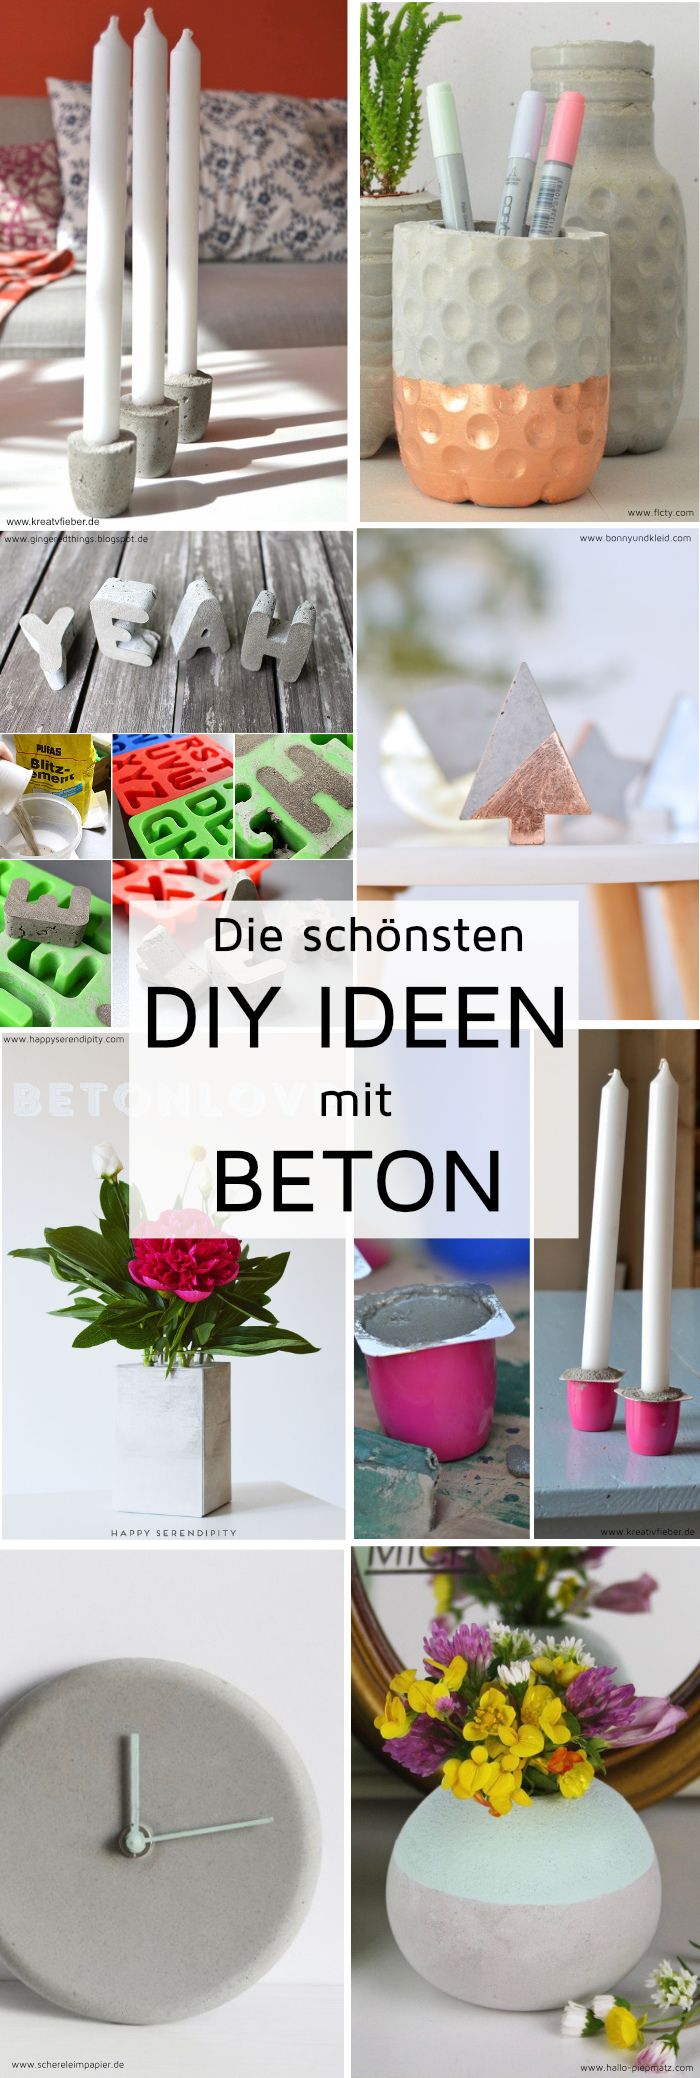 die sch nsten diy ideen mit beton madmoisell diy projekte basteln selbermachen pinterest. Black Bedroom Furniture Sets. Home Design Ideas